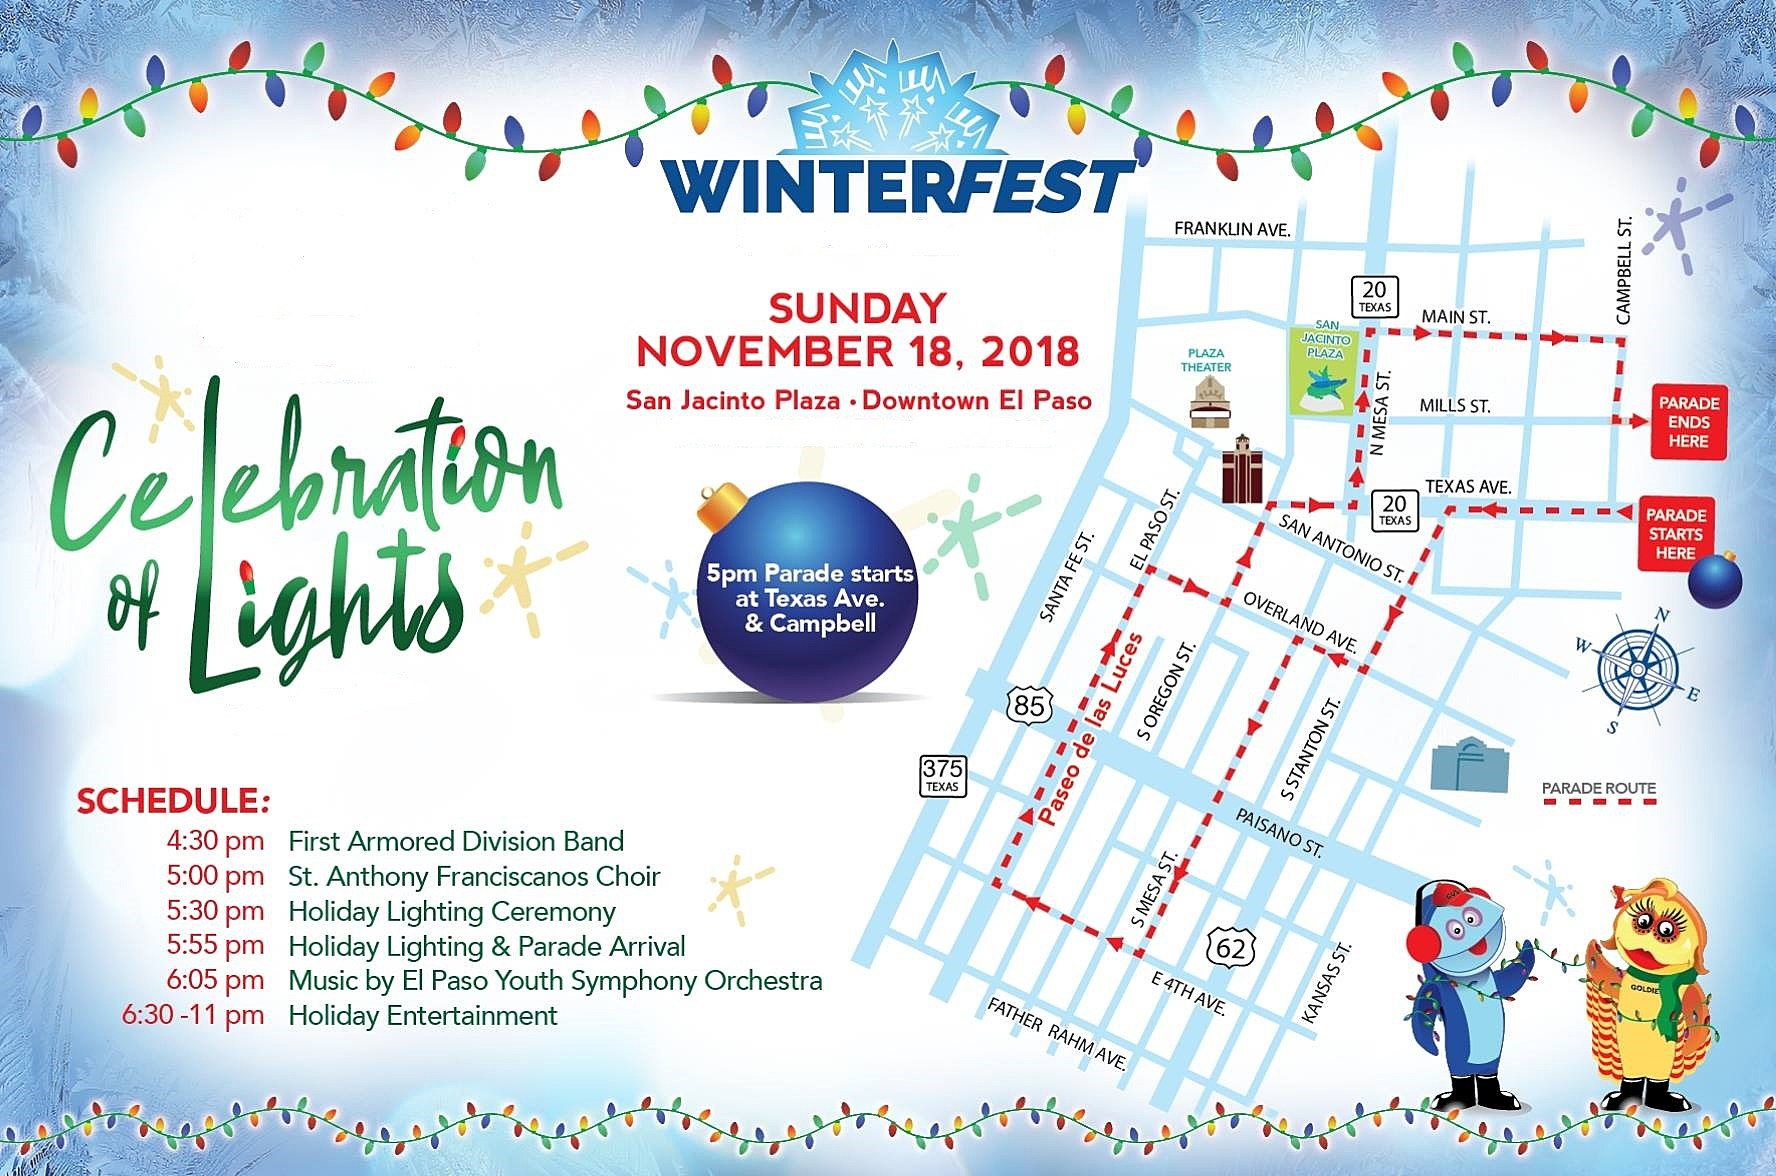 El Paso Christmas Parade 2019 2018 Celebration of Lights Tree Lighting and Parade Schedule